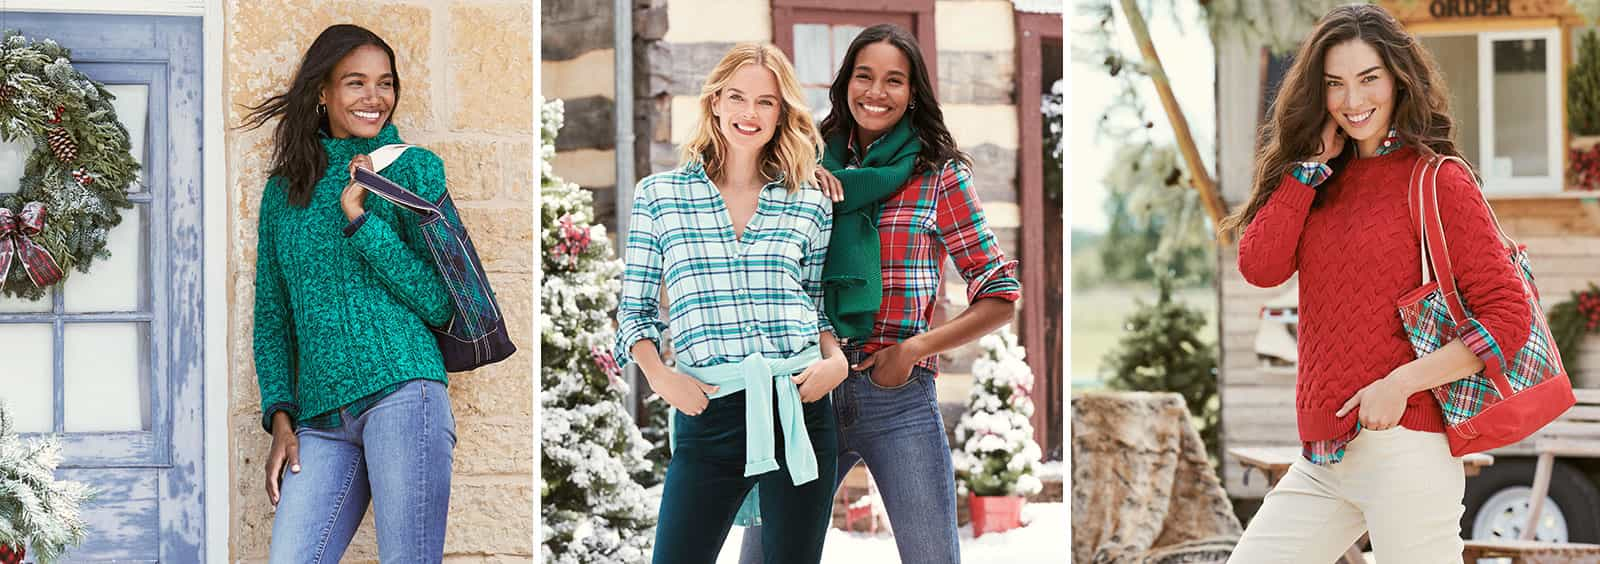 Sparkles, Velvet and More: How to Elevate Your Holiday Style | Lands' End